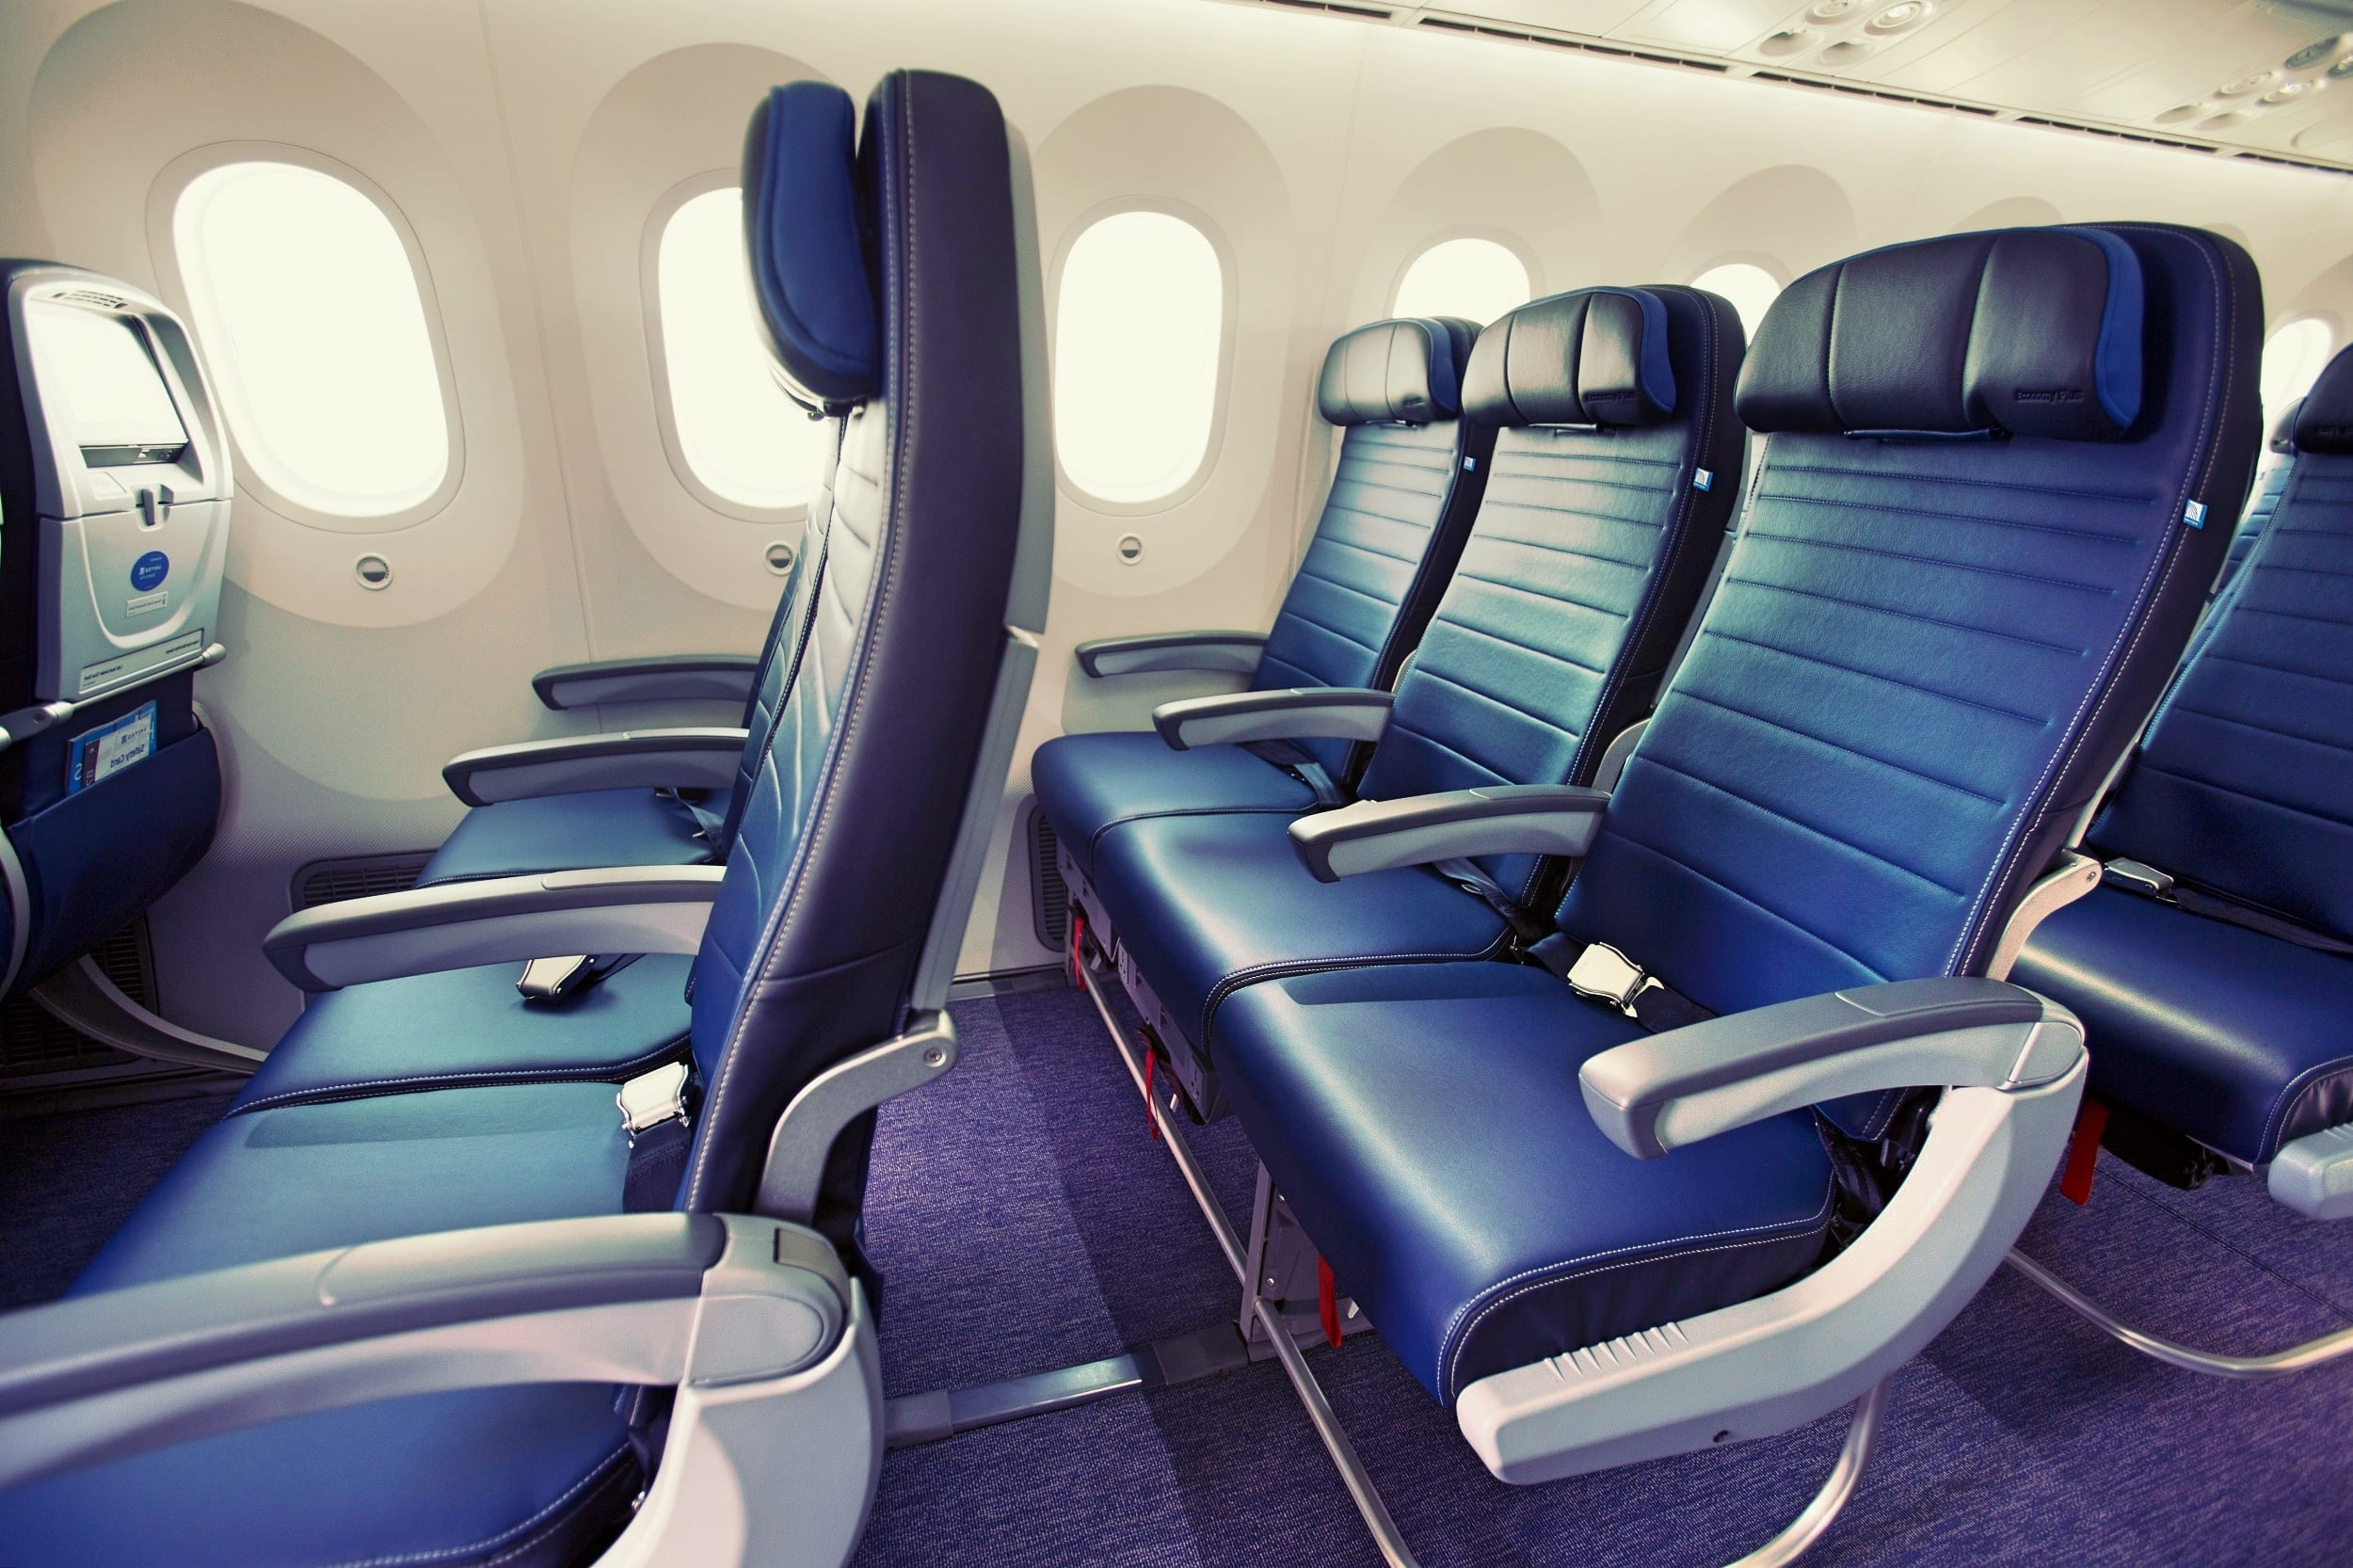 United Airlines Thinks Aisle Seats Should Cost More Than